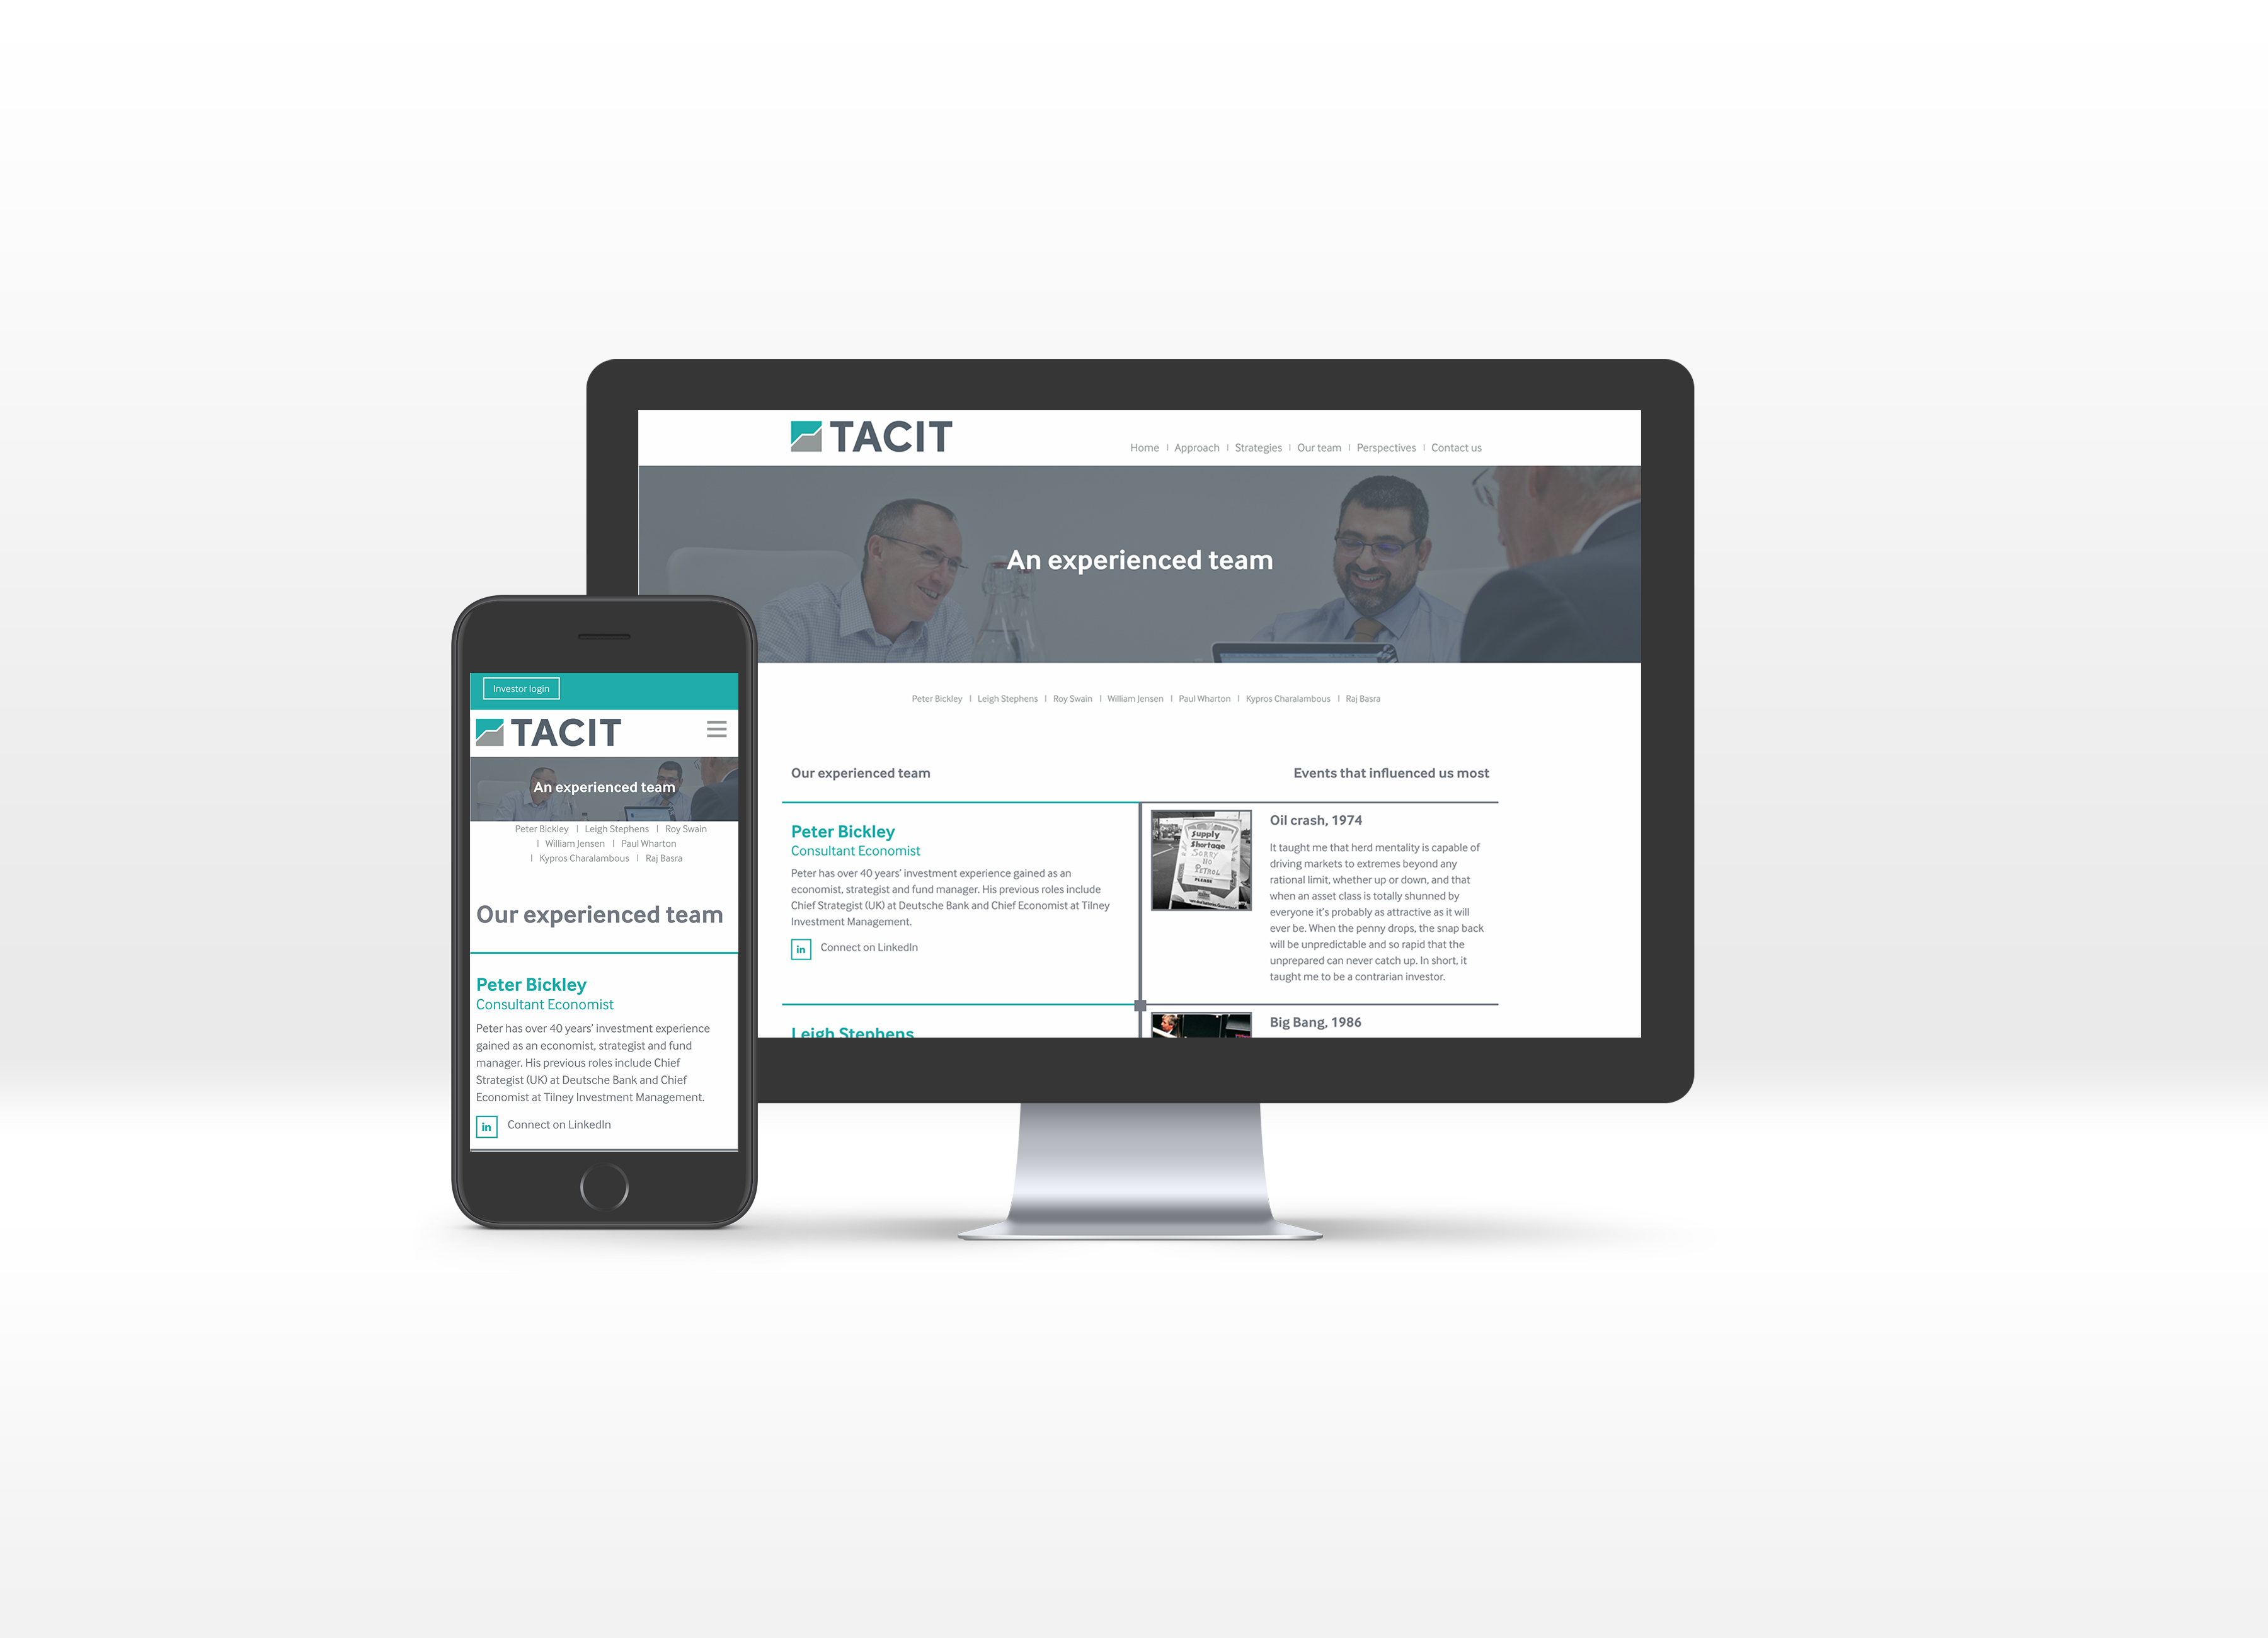 Tacit team page shown on desktop computer and mobile phone